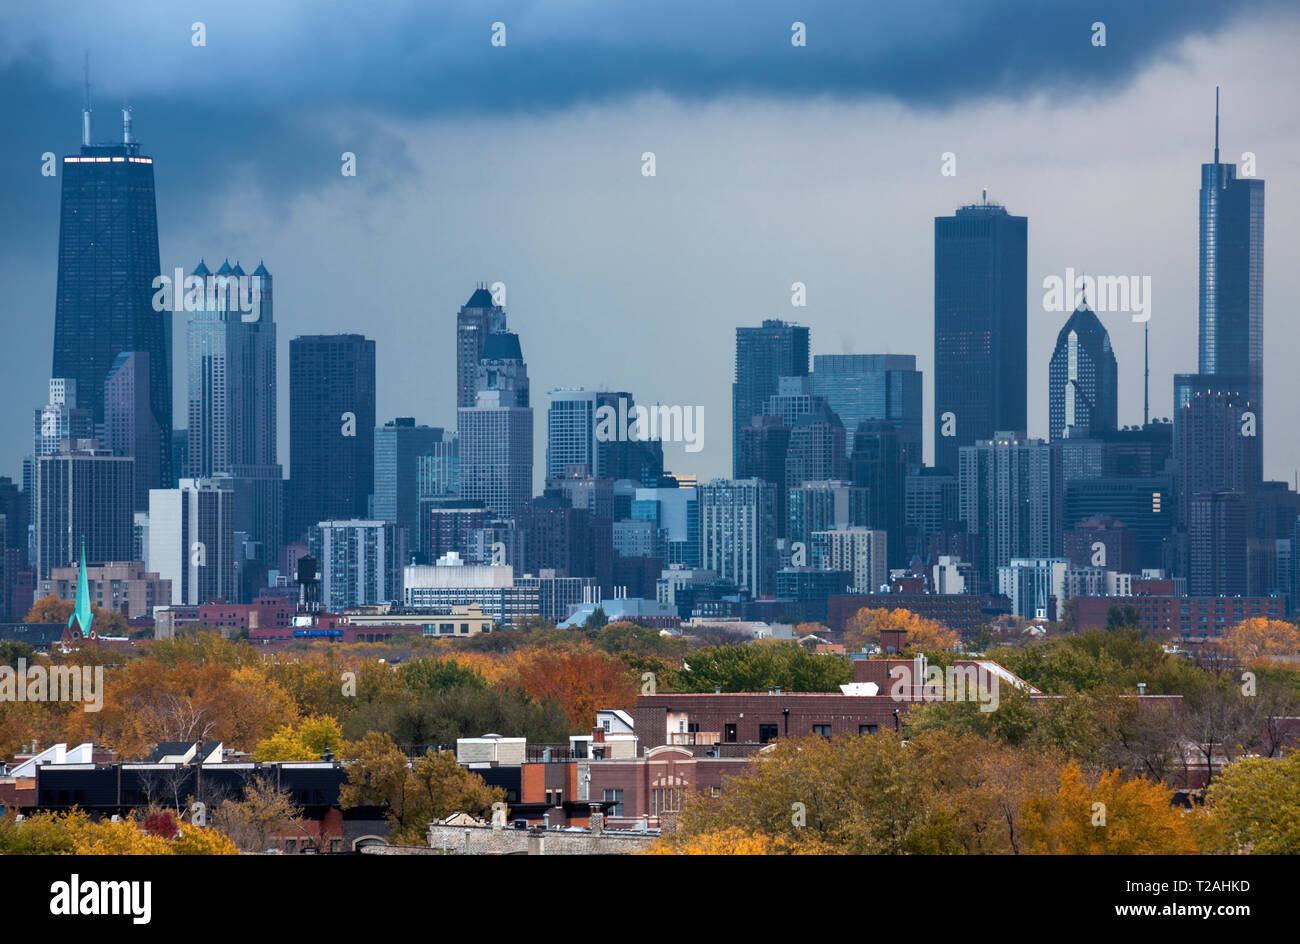 Skyline of Chicago, Illinois, USA - Stock Image